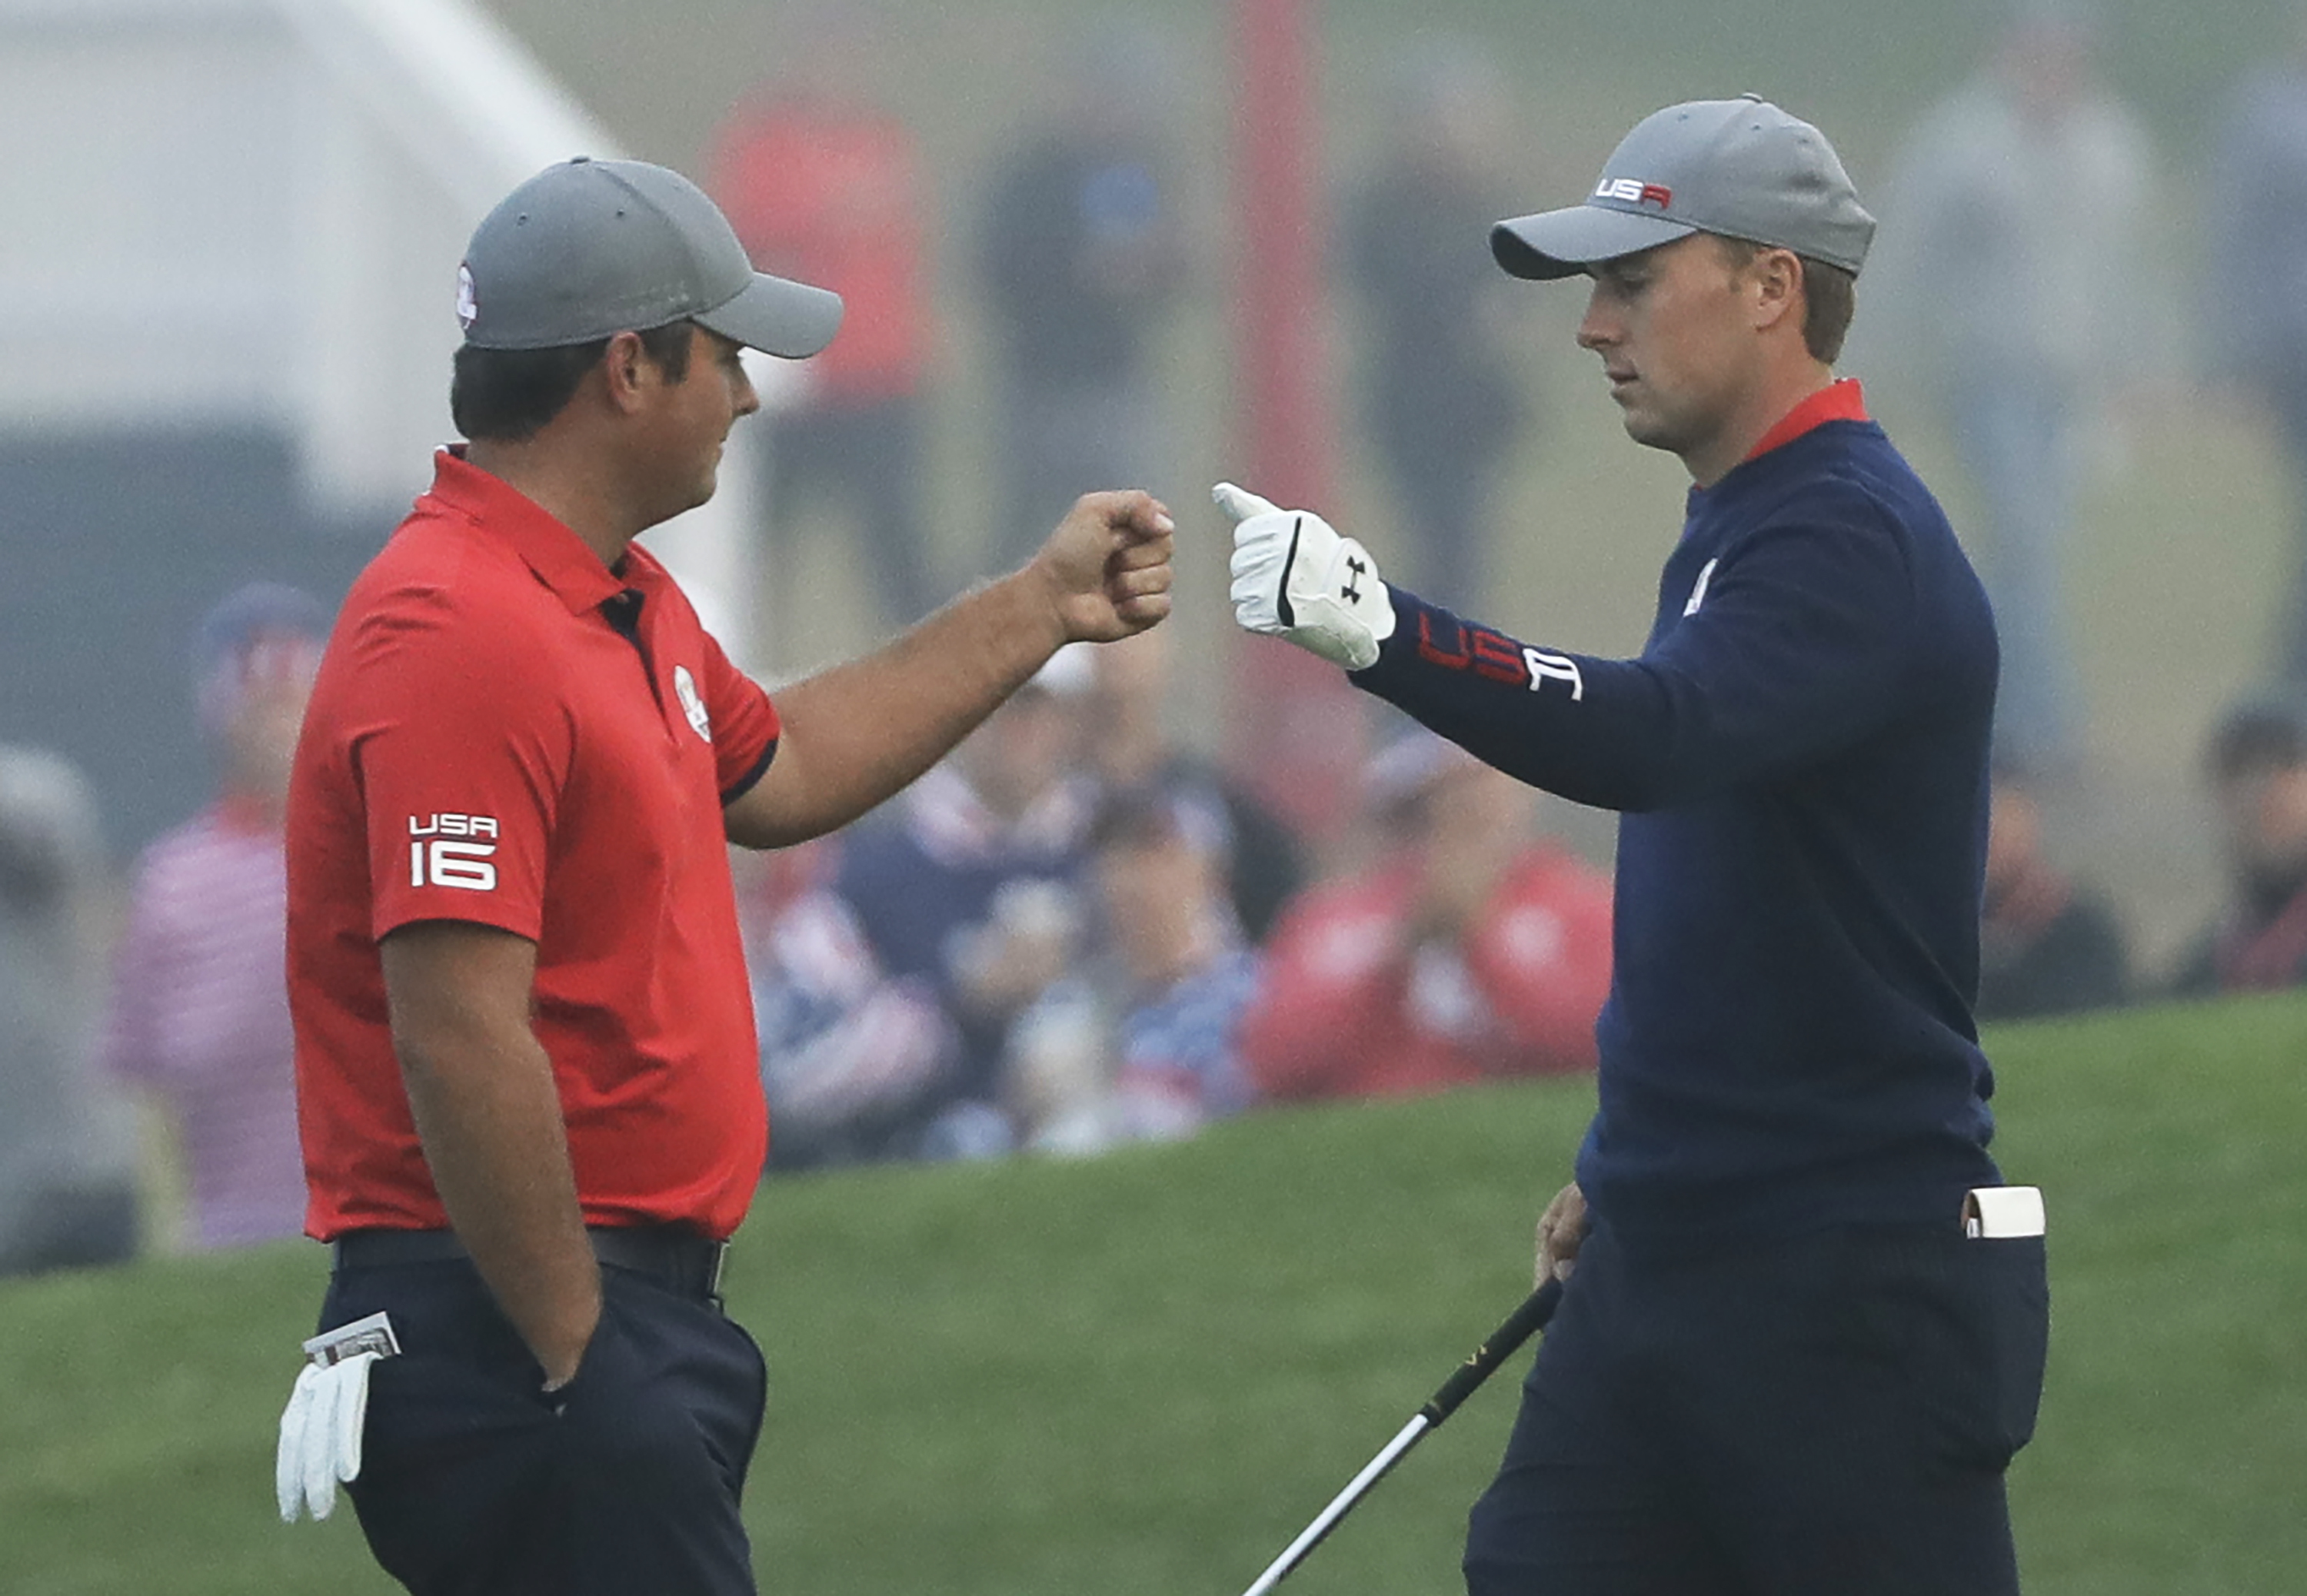 United States' Patrick Reed fist pumps teammate Jordan Spieth on the first hole during a foresomes match at the Ryder Cup golf tournament Friday, Sept. 30, 2016, at Hazeltine National Golf Club in Chaska, Minn. (AP Photo/David J. Phillip)